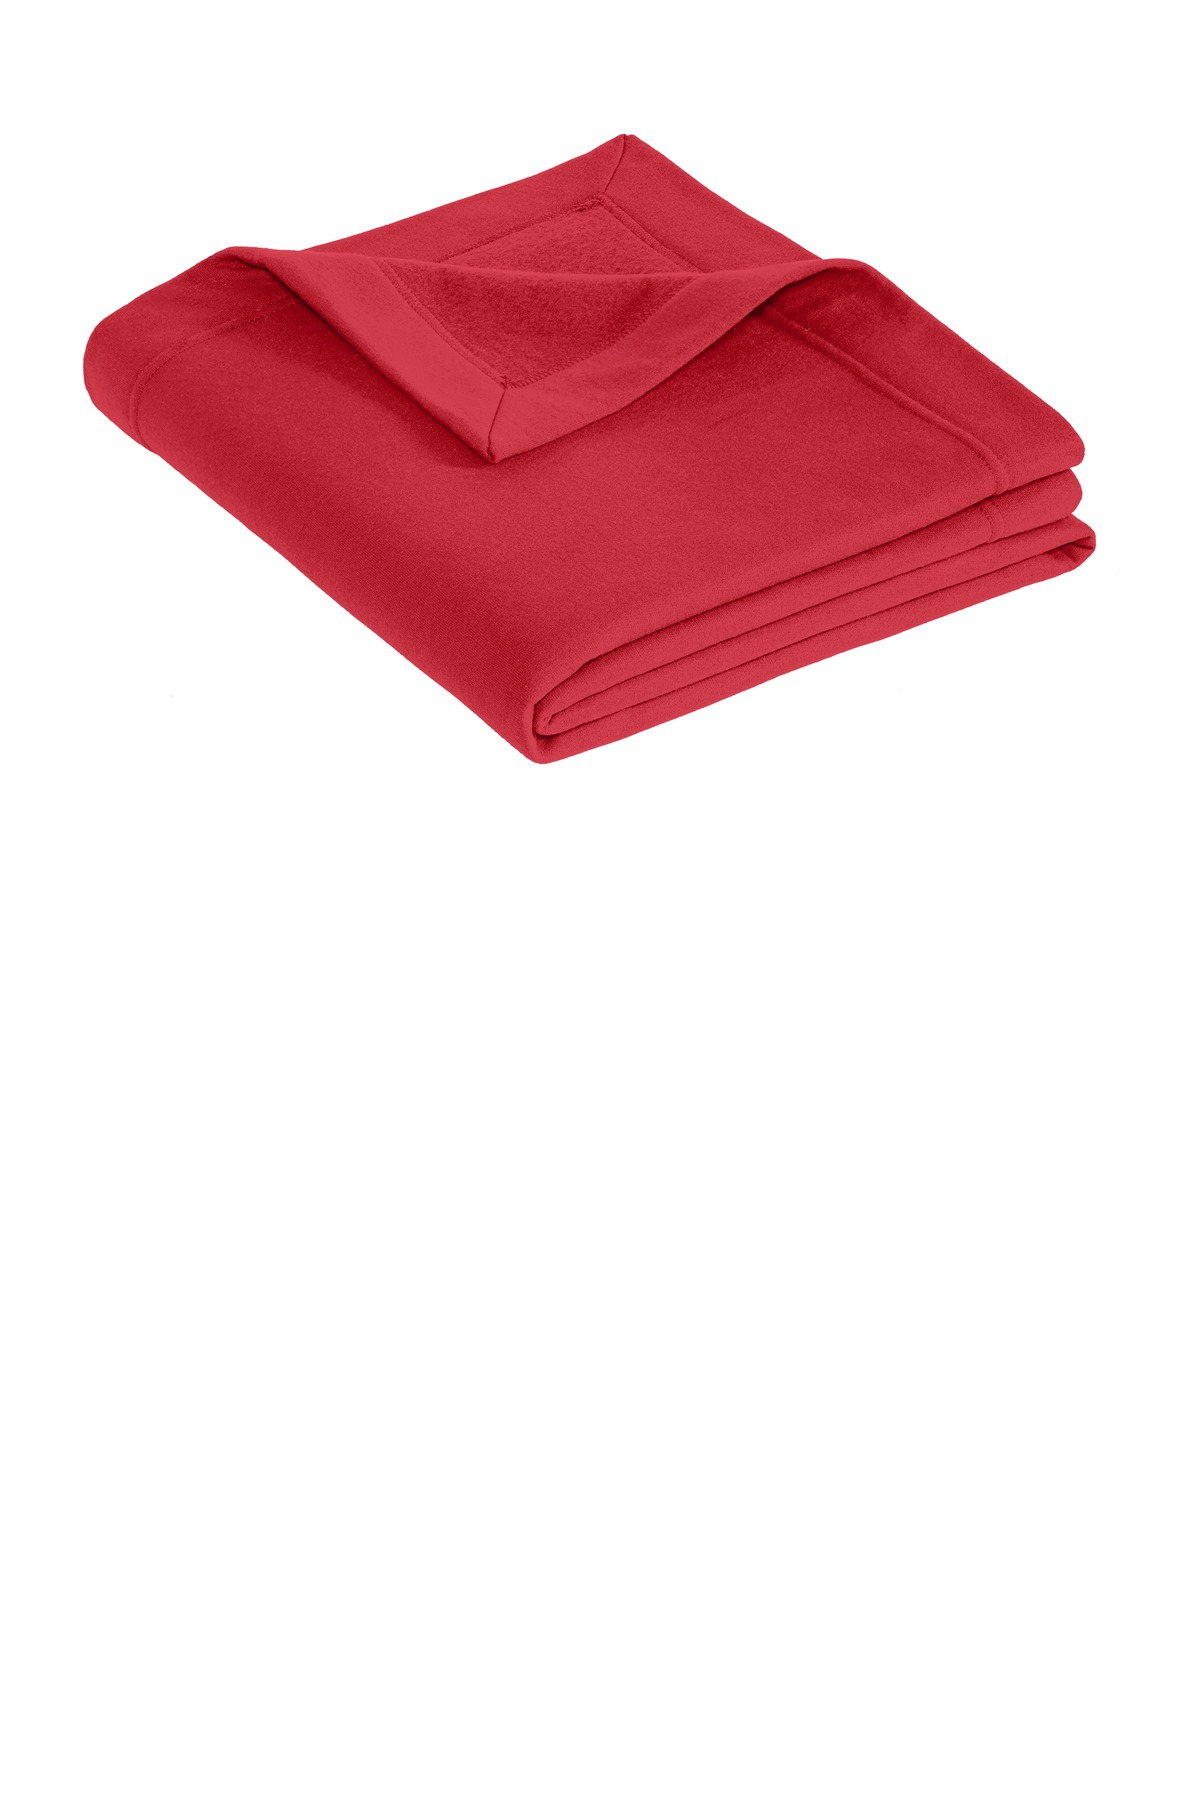 Gildan ®  DryBlend ®  Stadium Blanket. 12900 - Red